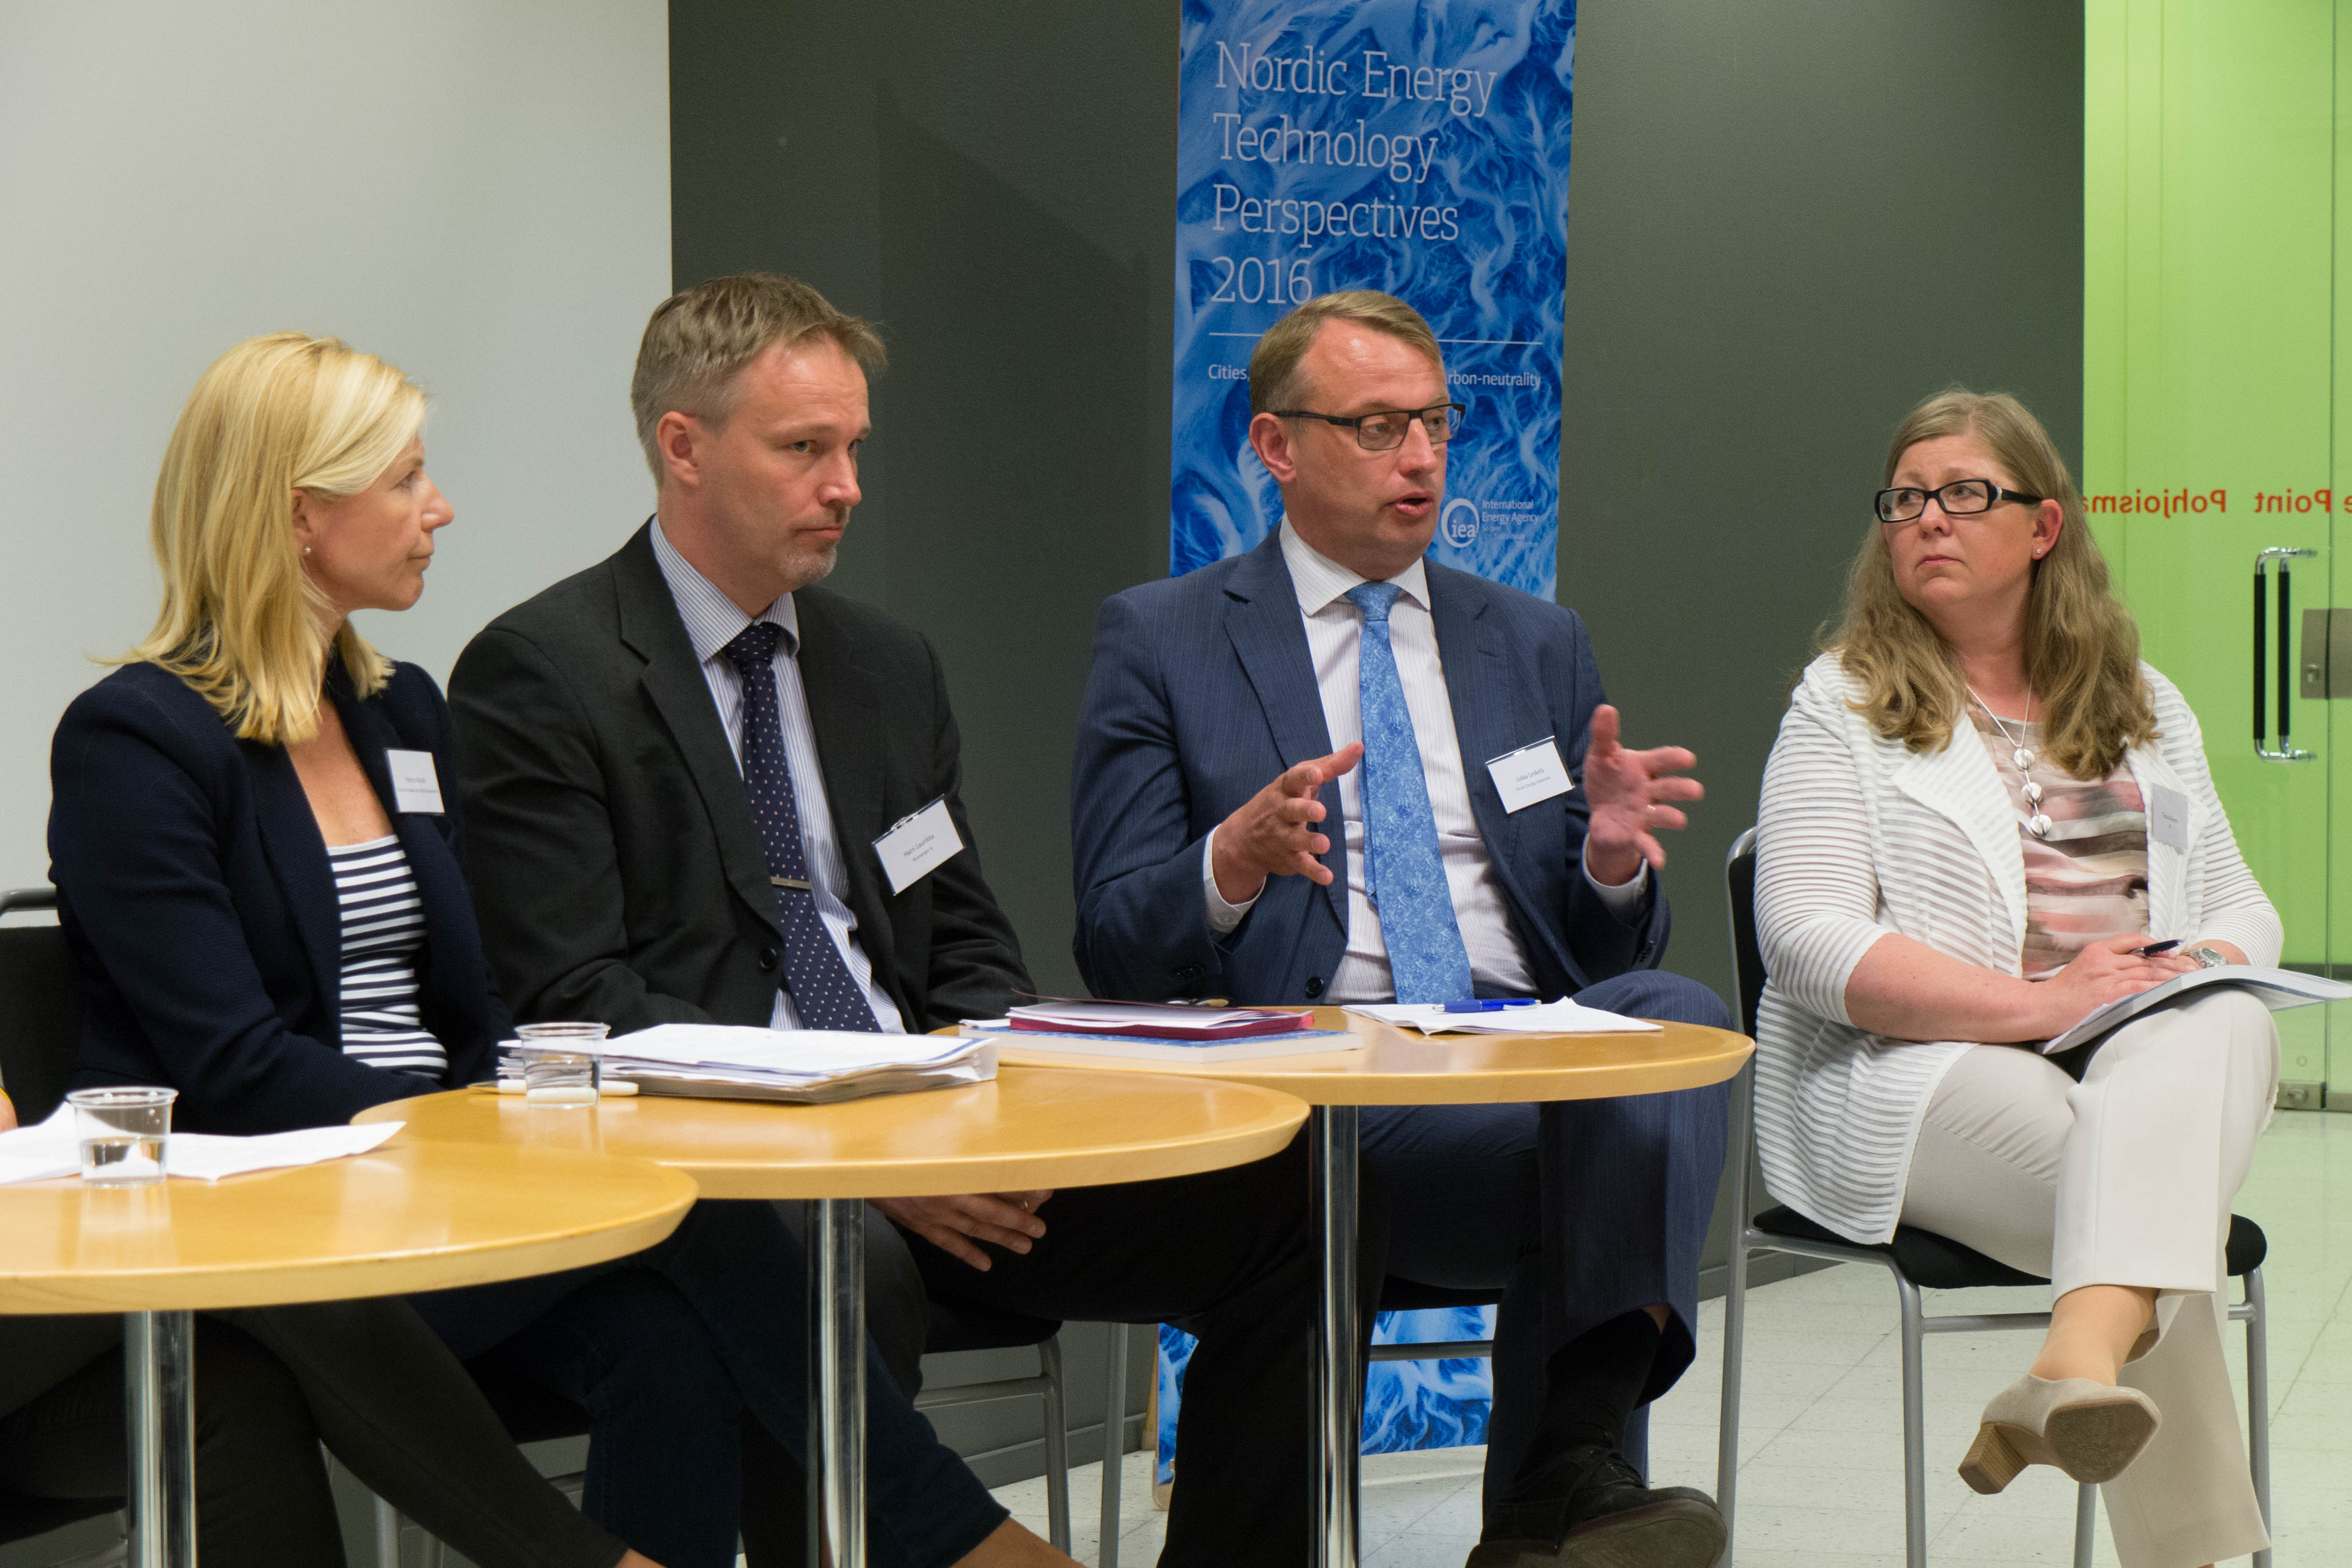 Left to right: Helena Vänskä (Finnish Petroleum and Biofuels Association), Harri Laurikka (Bioenergy Association of Finland), Jukka Leskelä (Finnish Energy Industries), Tiina Koljonen (VTT). Helsinki 16th of June 2016.